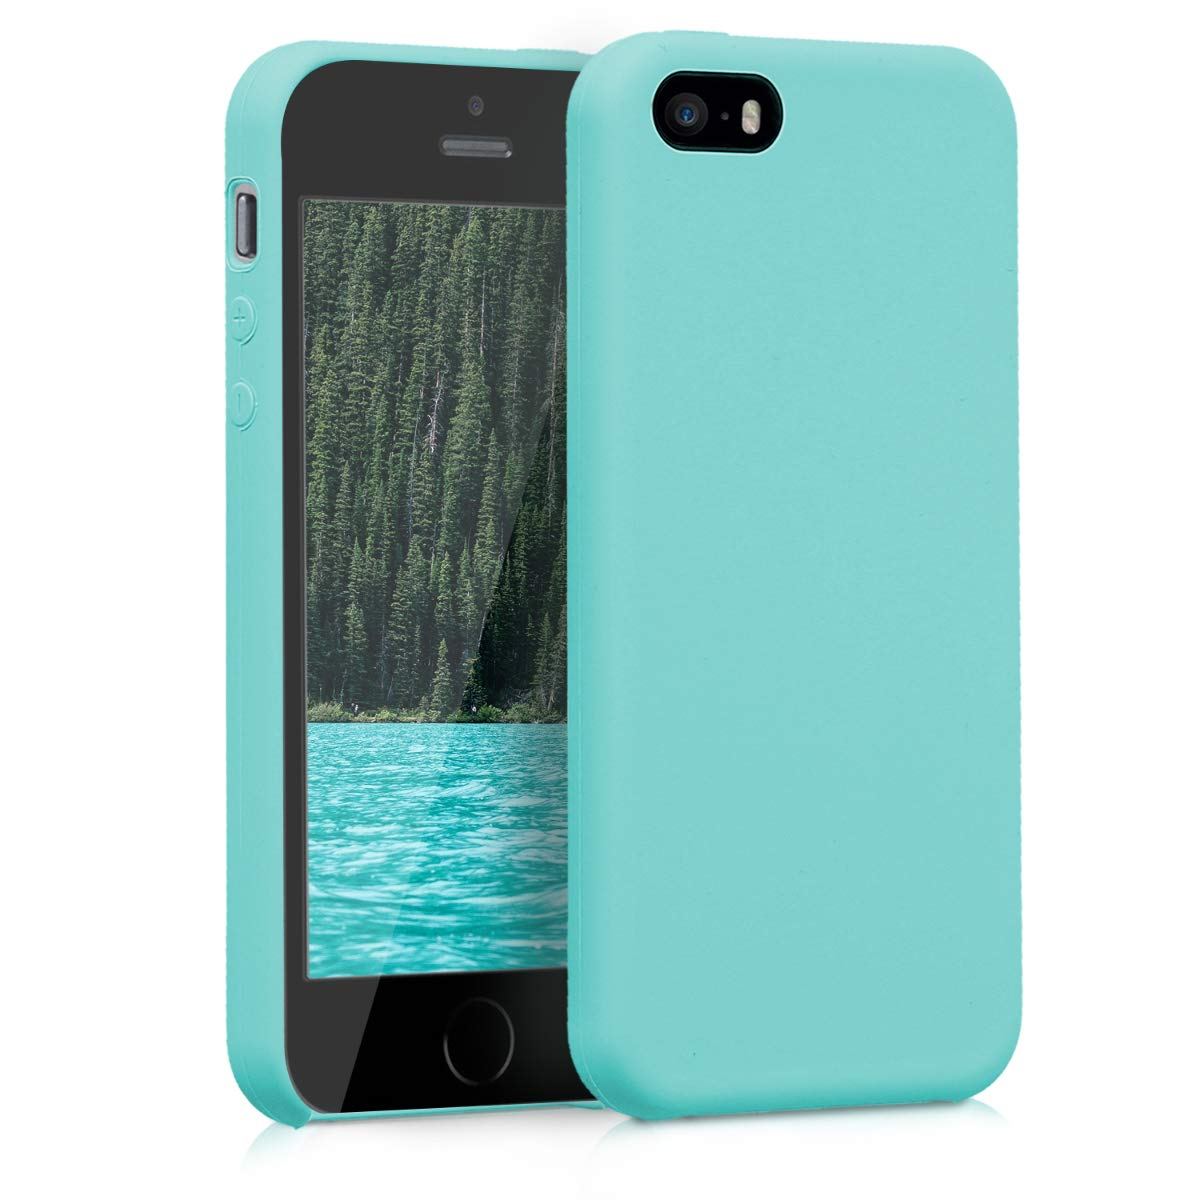 kwmobile TPU Silicone Case for Apple iPhone SE / 5 / 5S - Soft Flexible Rubber Protective Cover - Mint